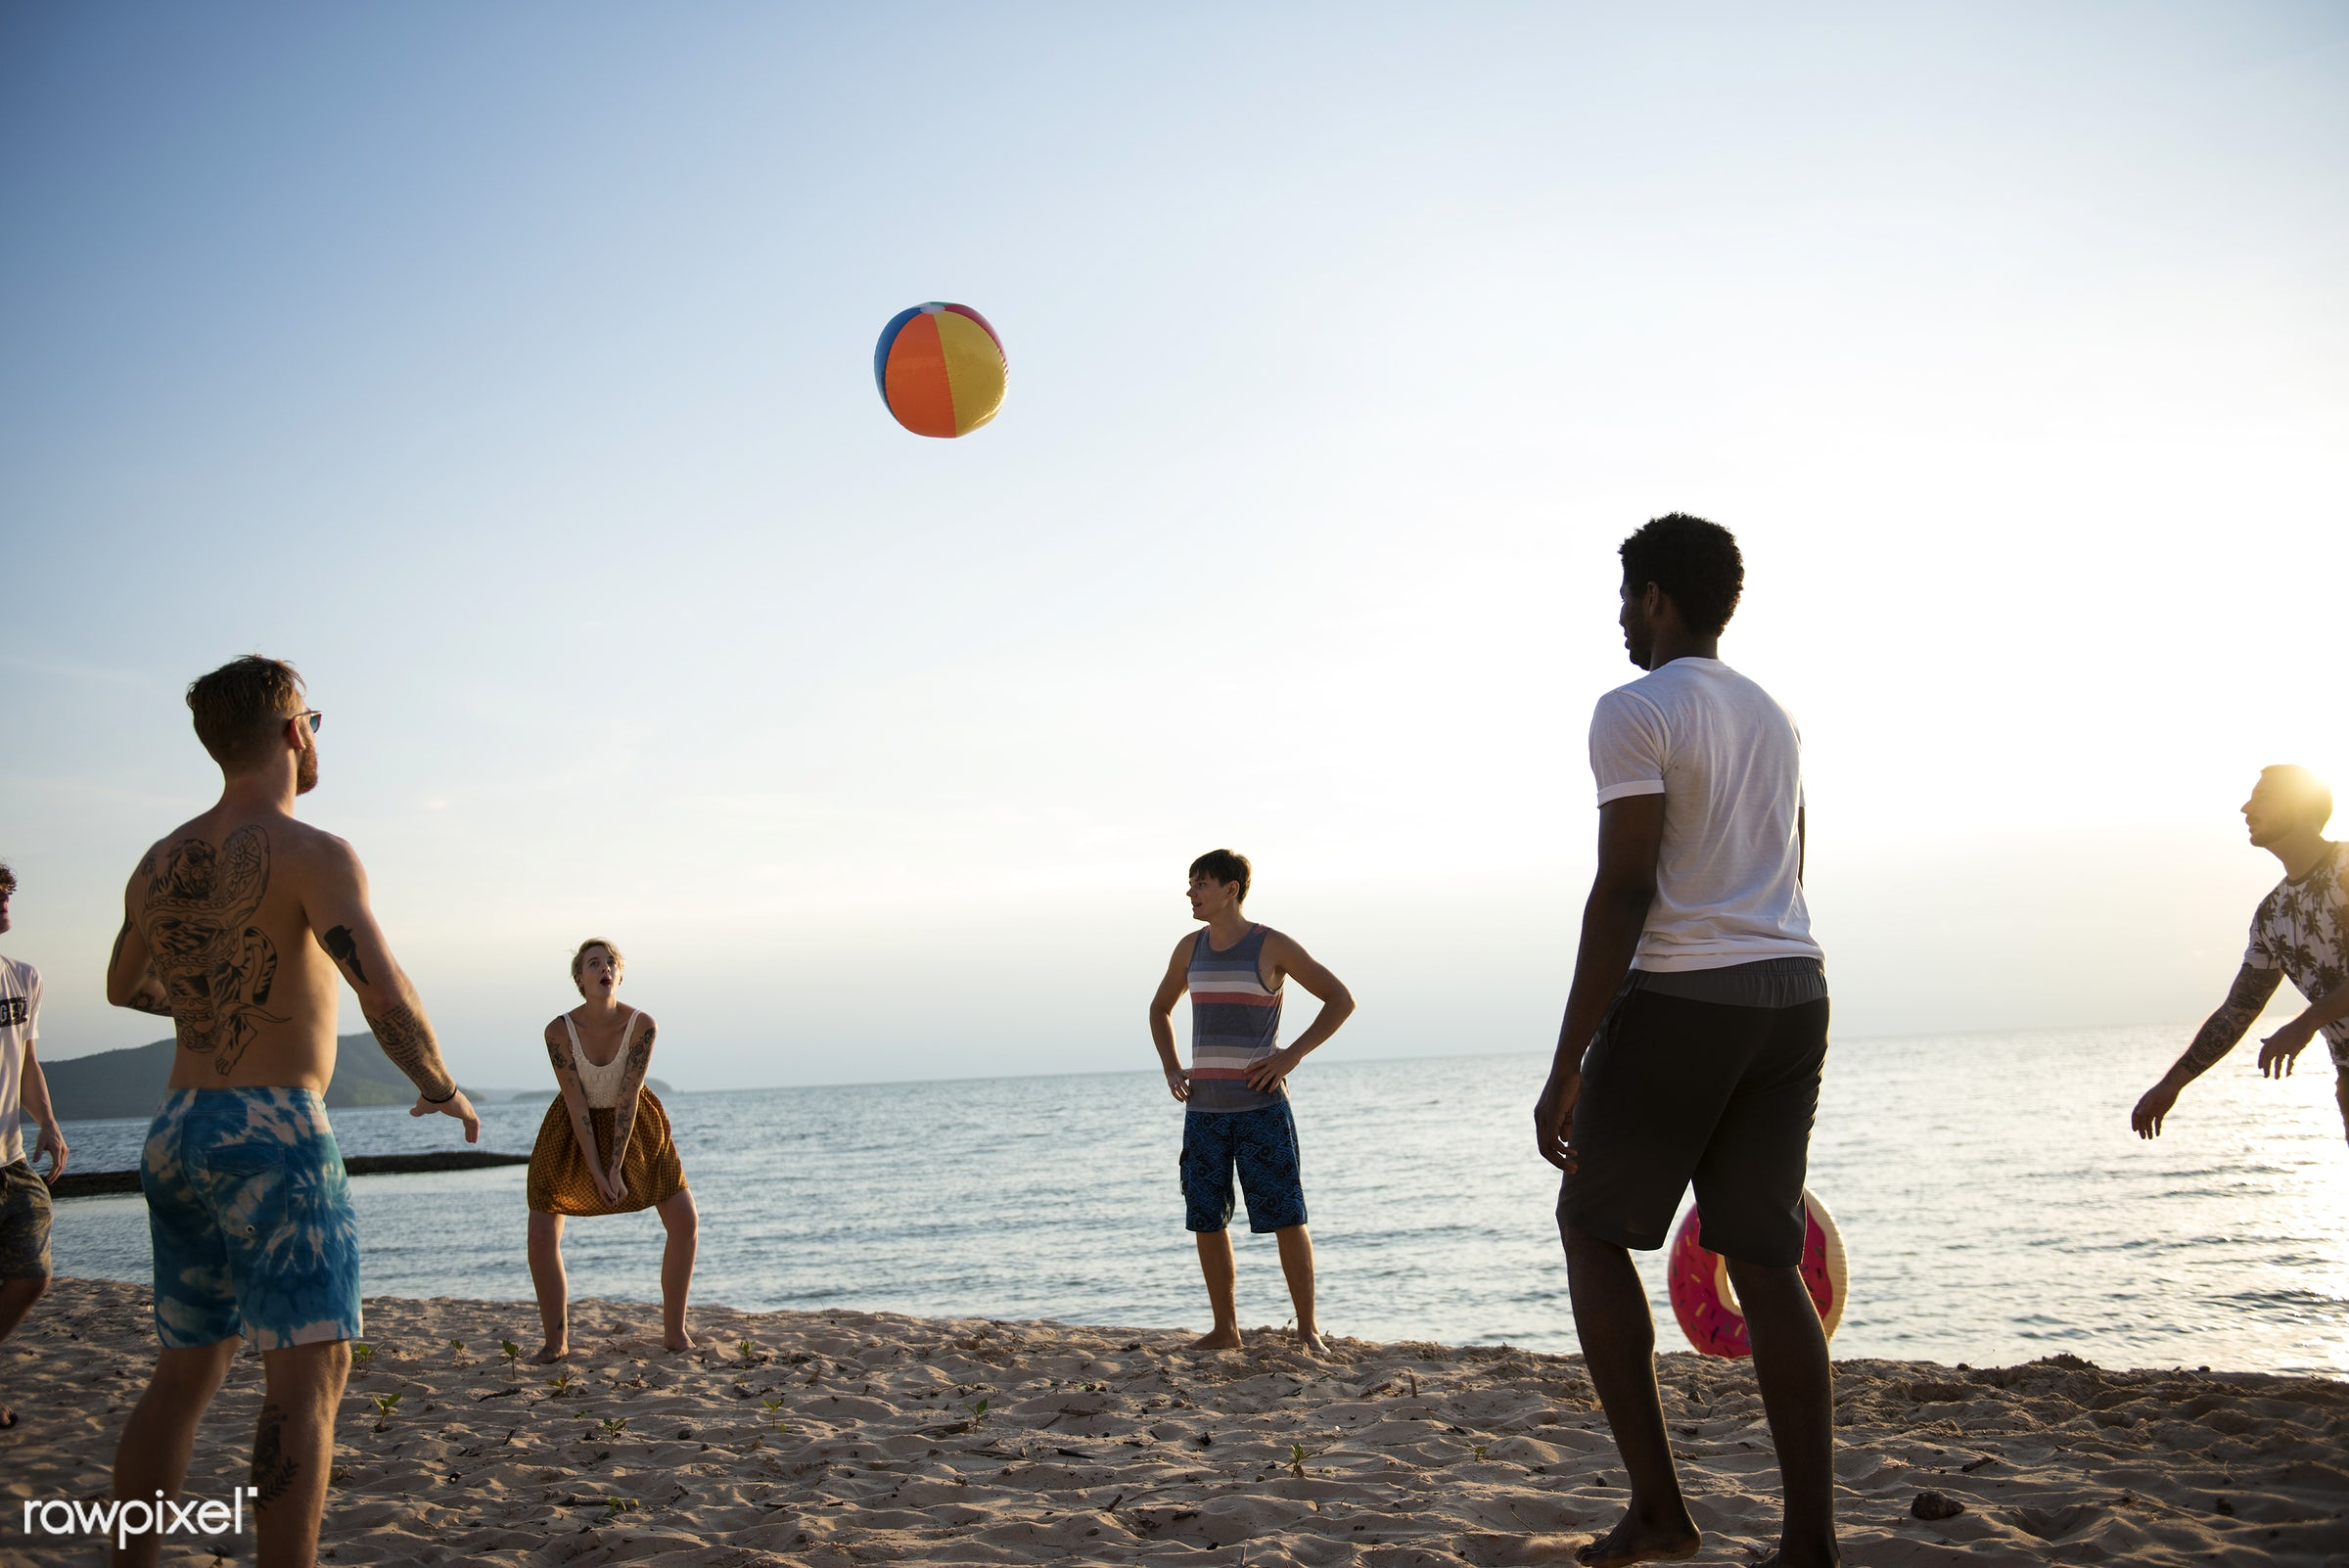 diverse, relax, inflatable ball, beach, recreation, people, coast, together, break, friends, cheerful, activity, sand, ball...